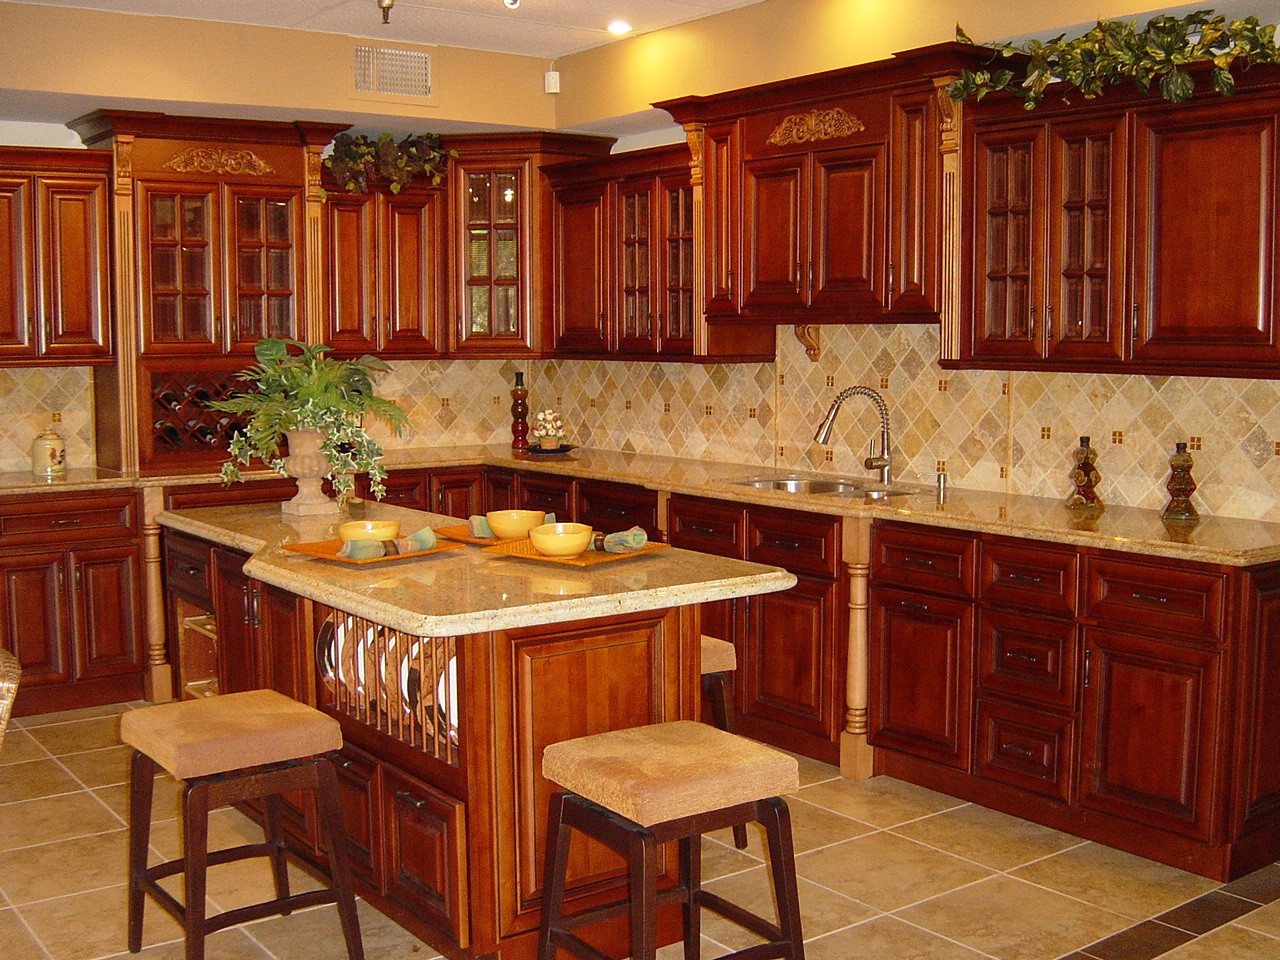 Permalink to Kitchen Cabinets Photos Gallery